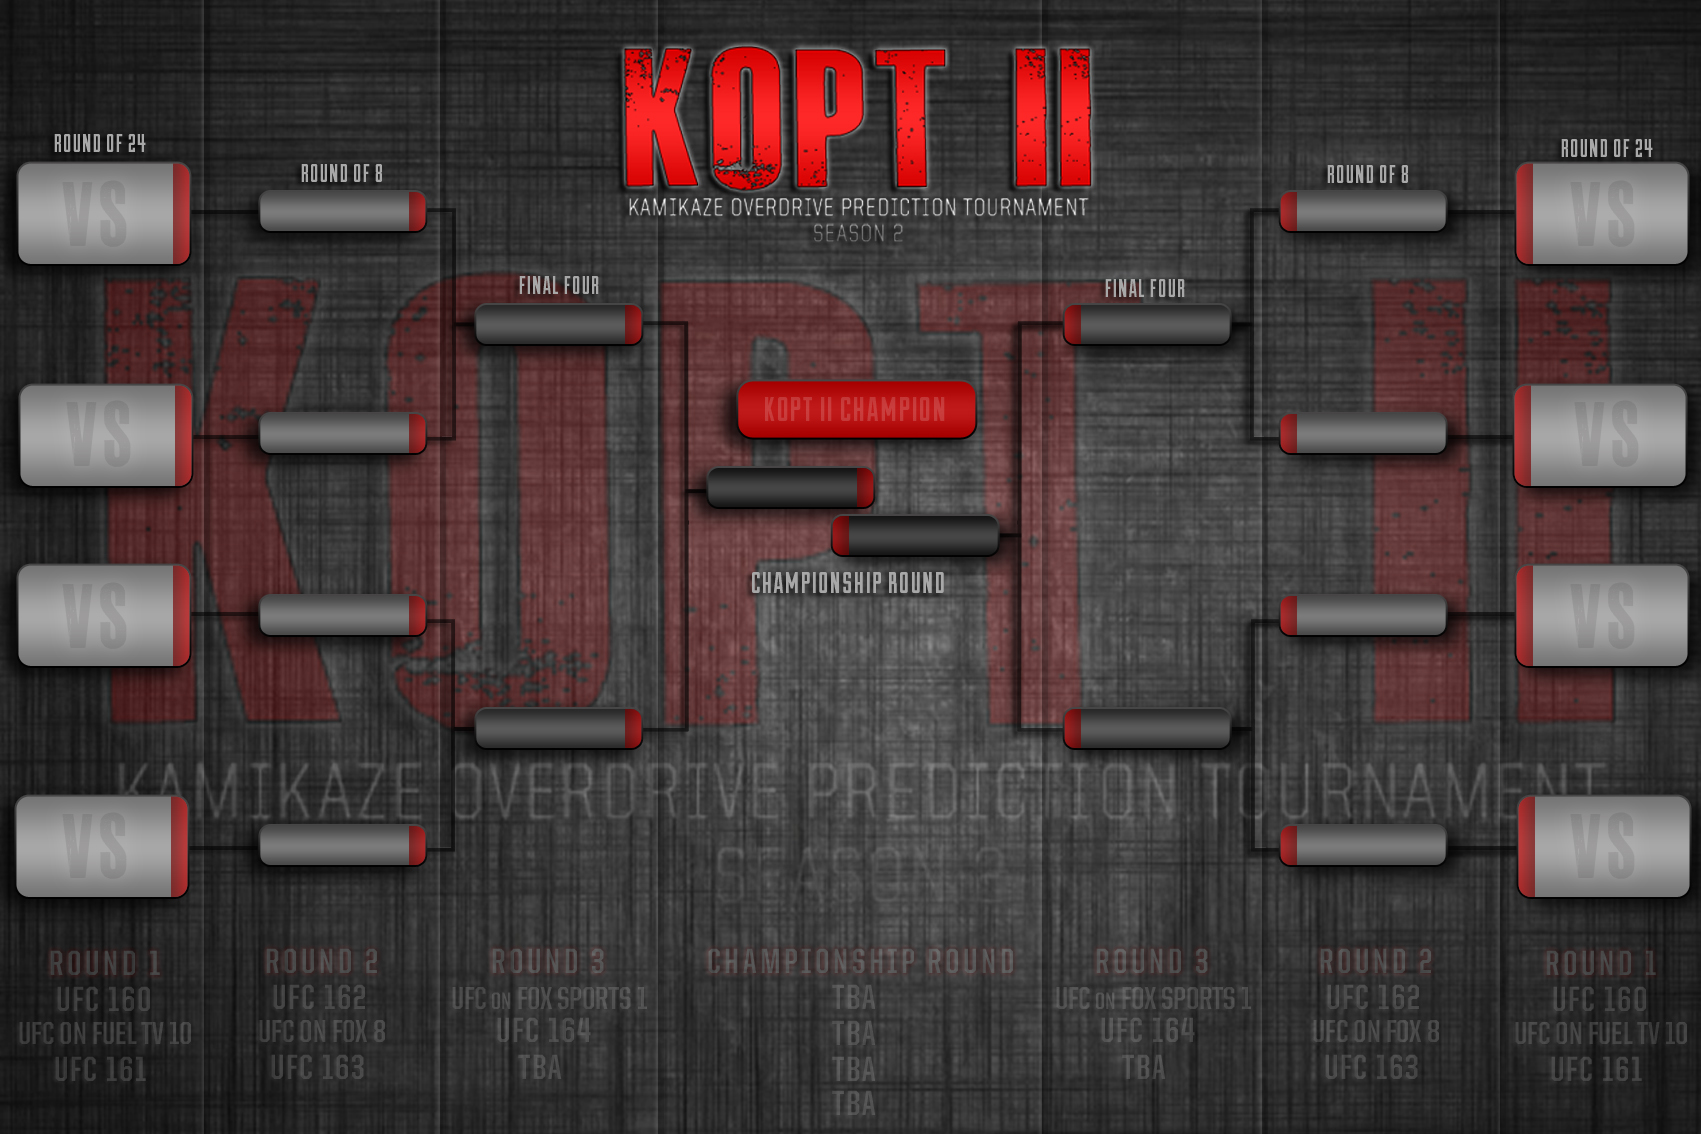 KOPT II Bracket